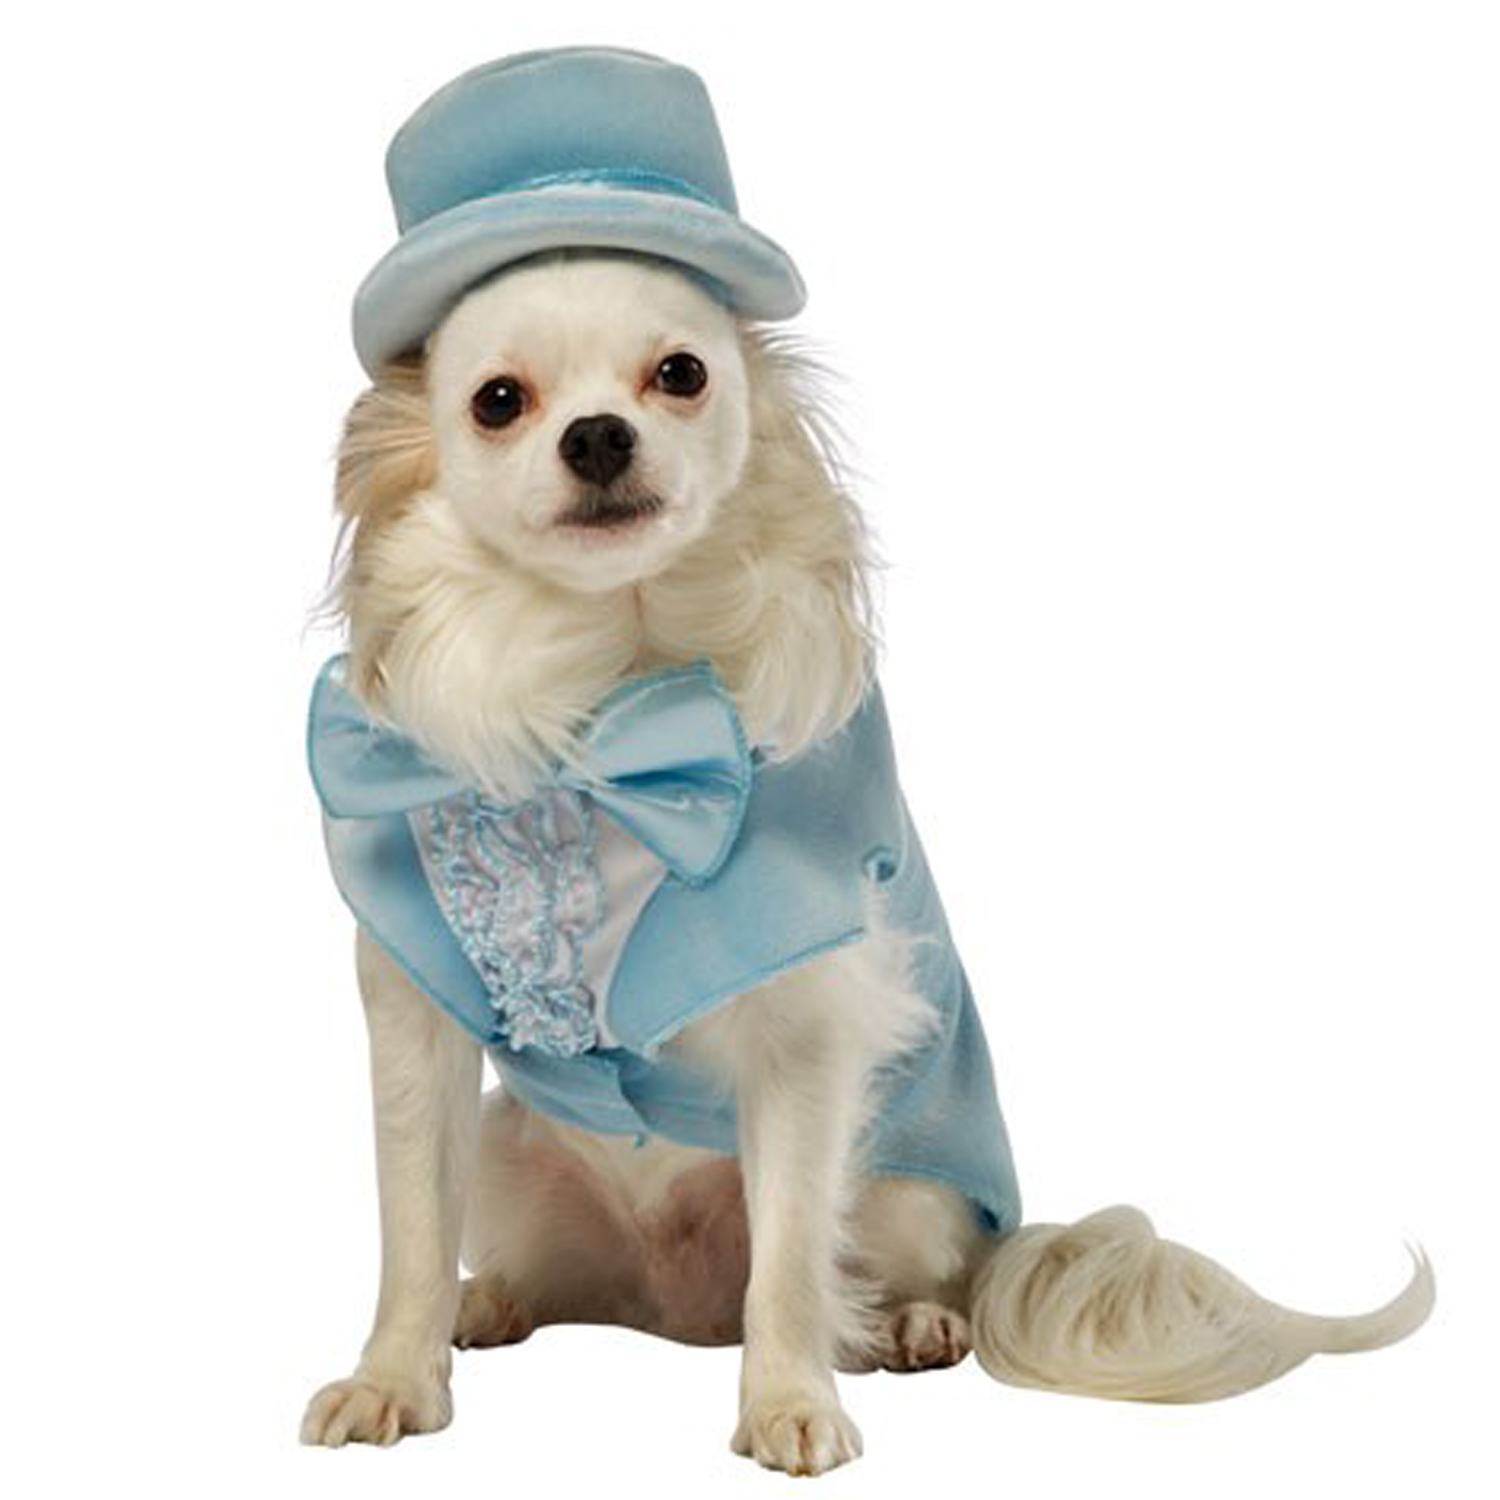 Dumb and Dumber Harry Tux Dog Costume - Blue